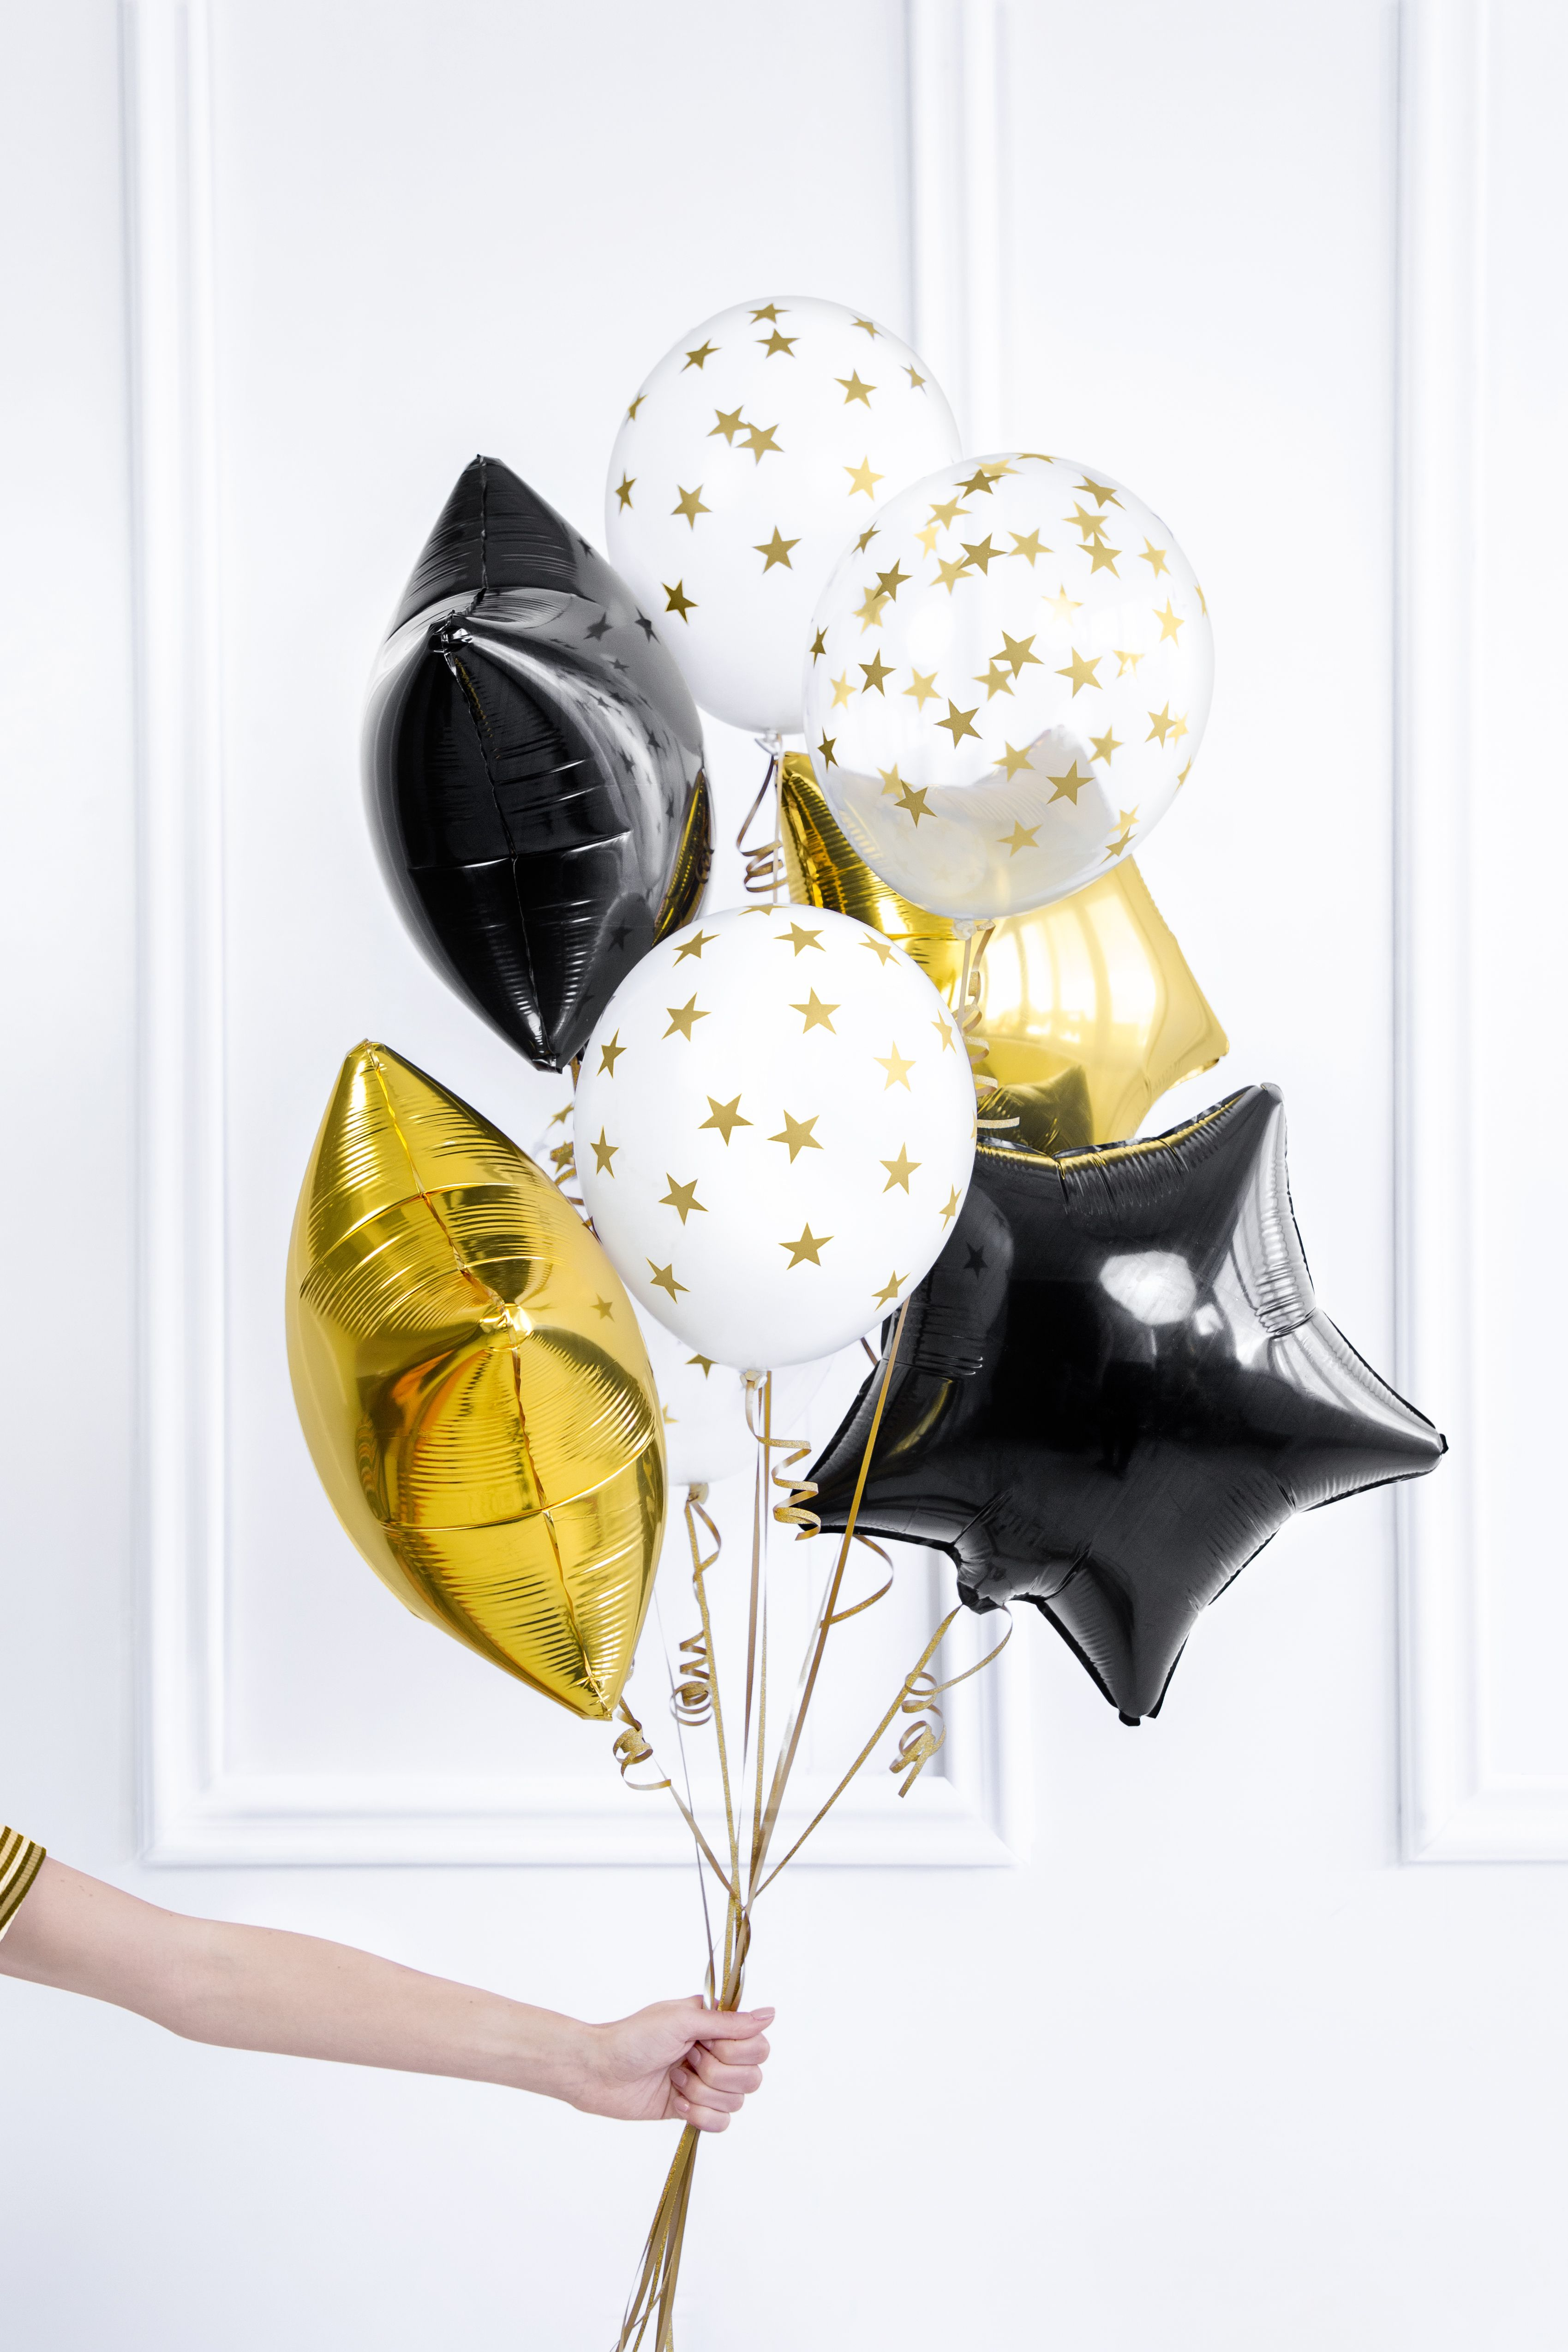 Gold New Year S Party Collection Balloons 2021 New Year S Party Decorations Foil Balloons Balloon Decorations 2021 new year balloons and gift